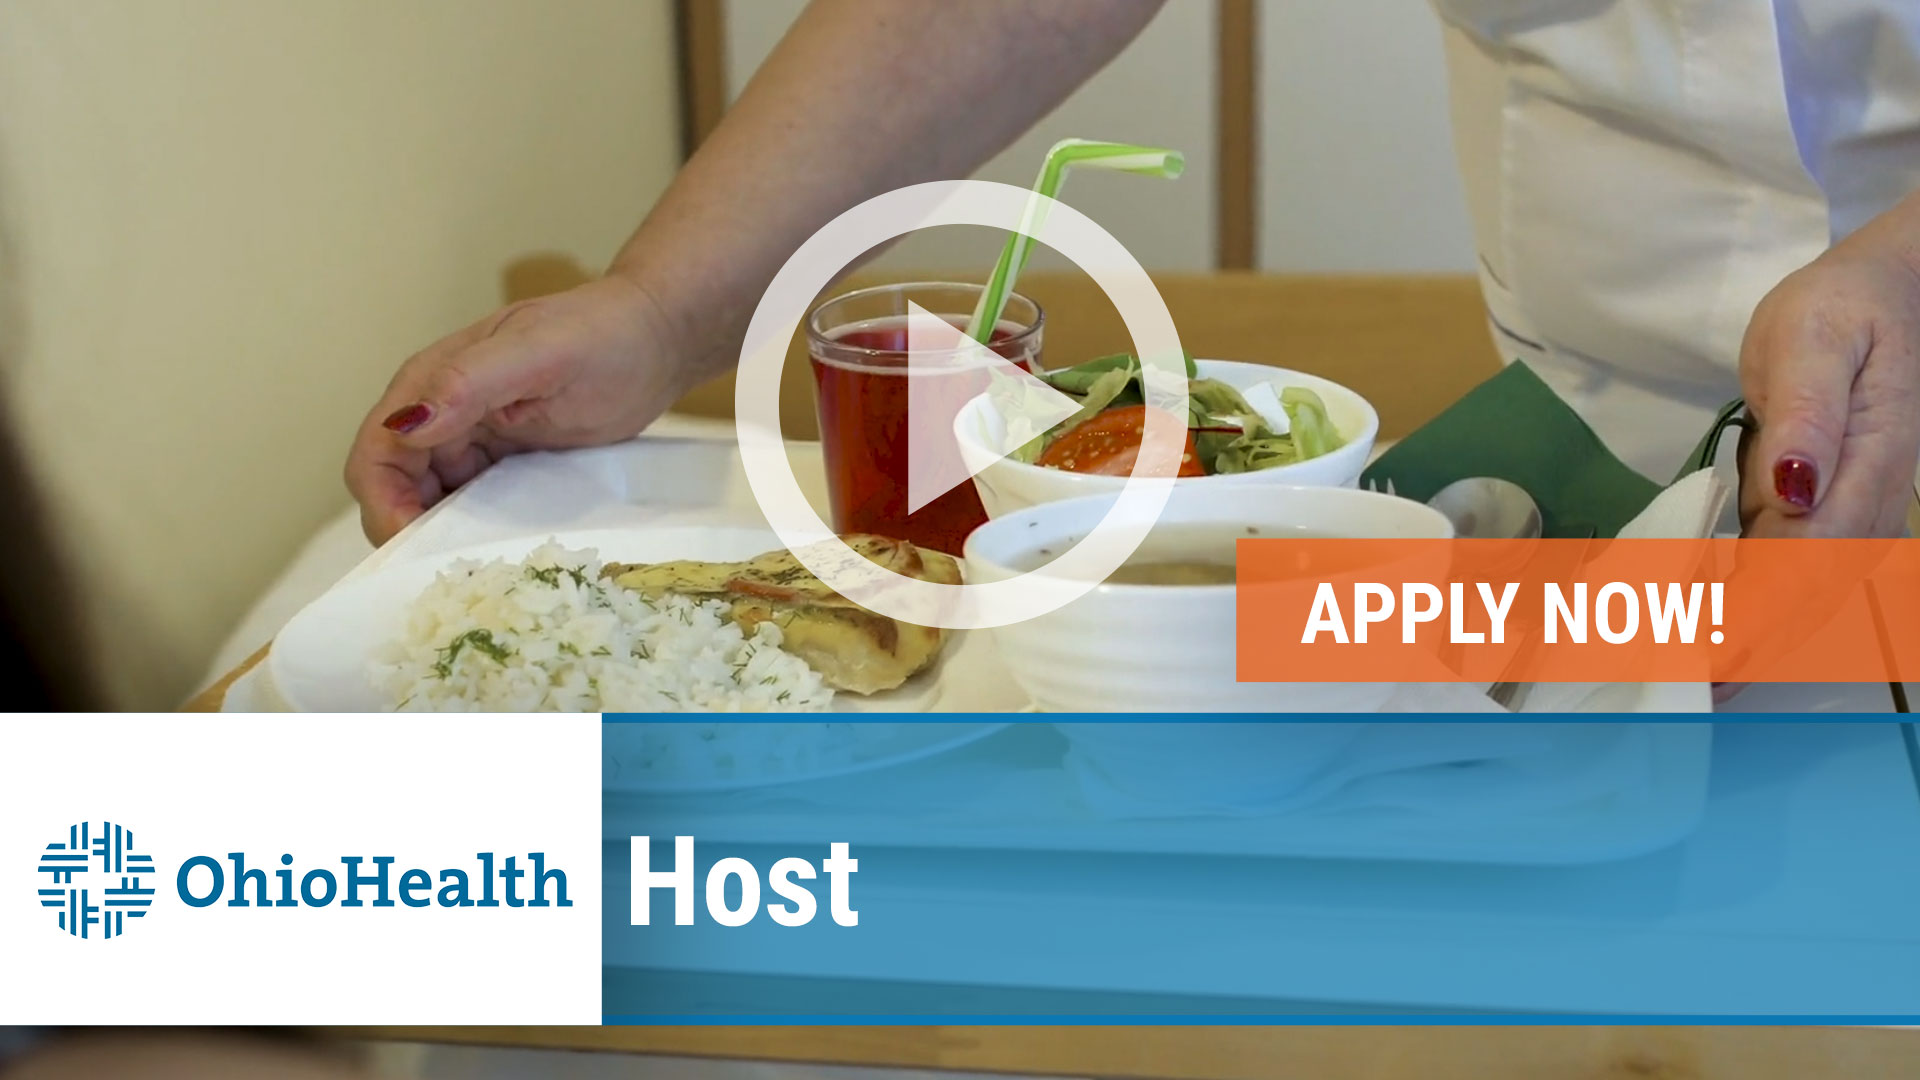 Watch our careers video for available job opening Host in Mansfield, Ohio